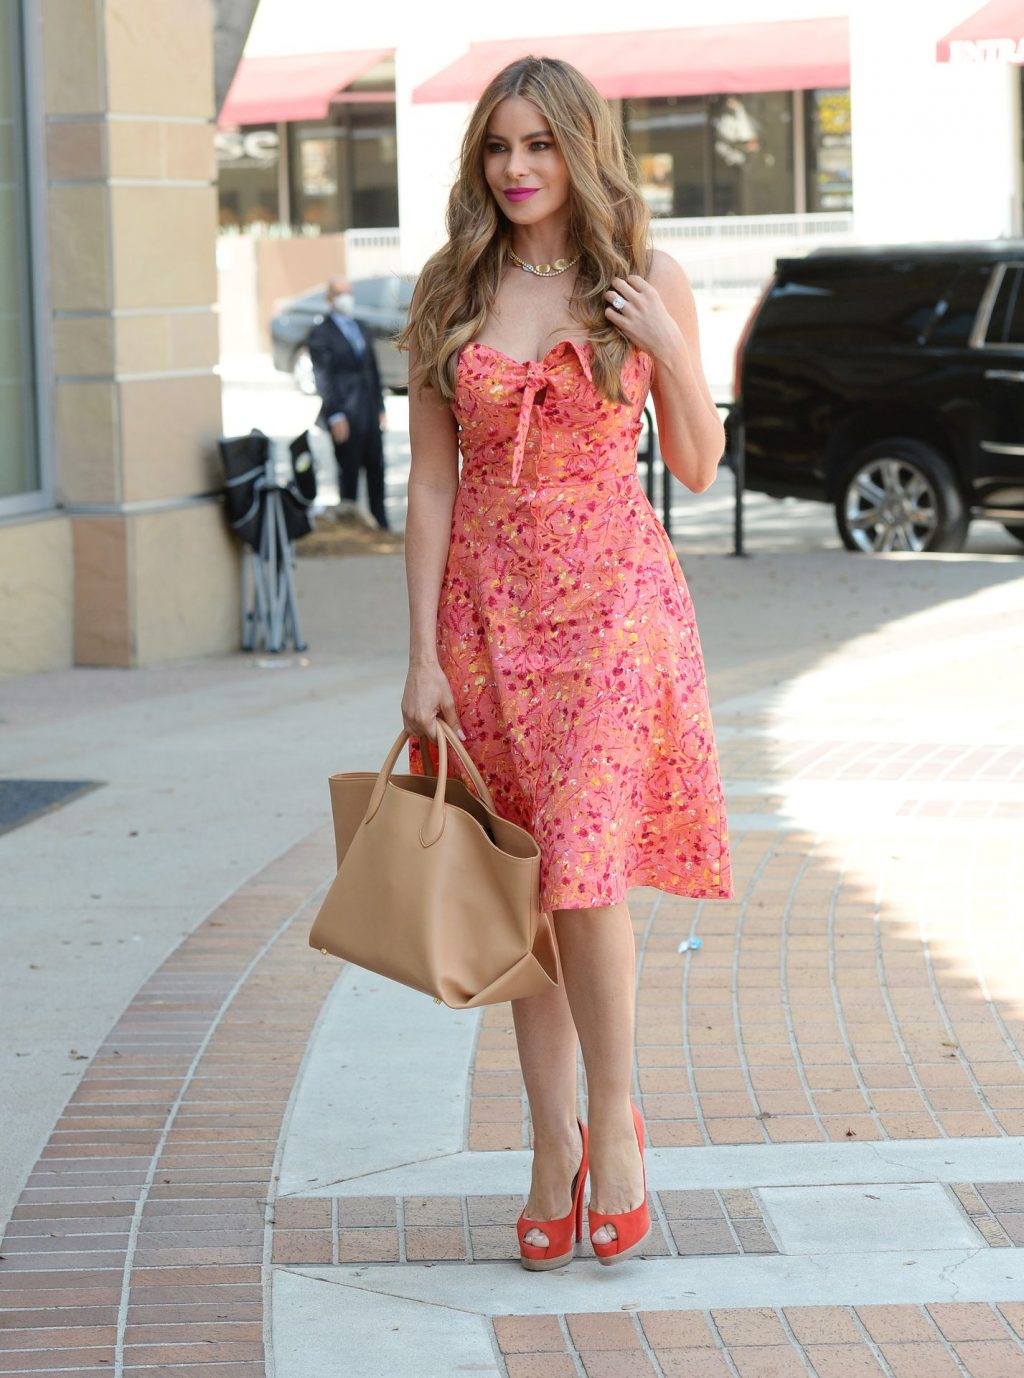 Sofia Vergara Brings Out Her Mile Long Legs for AGT Taping in LA (37 Photos)